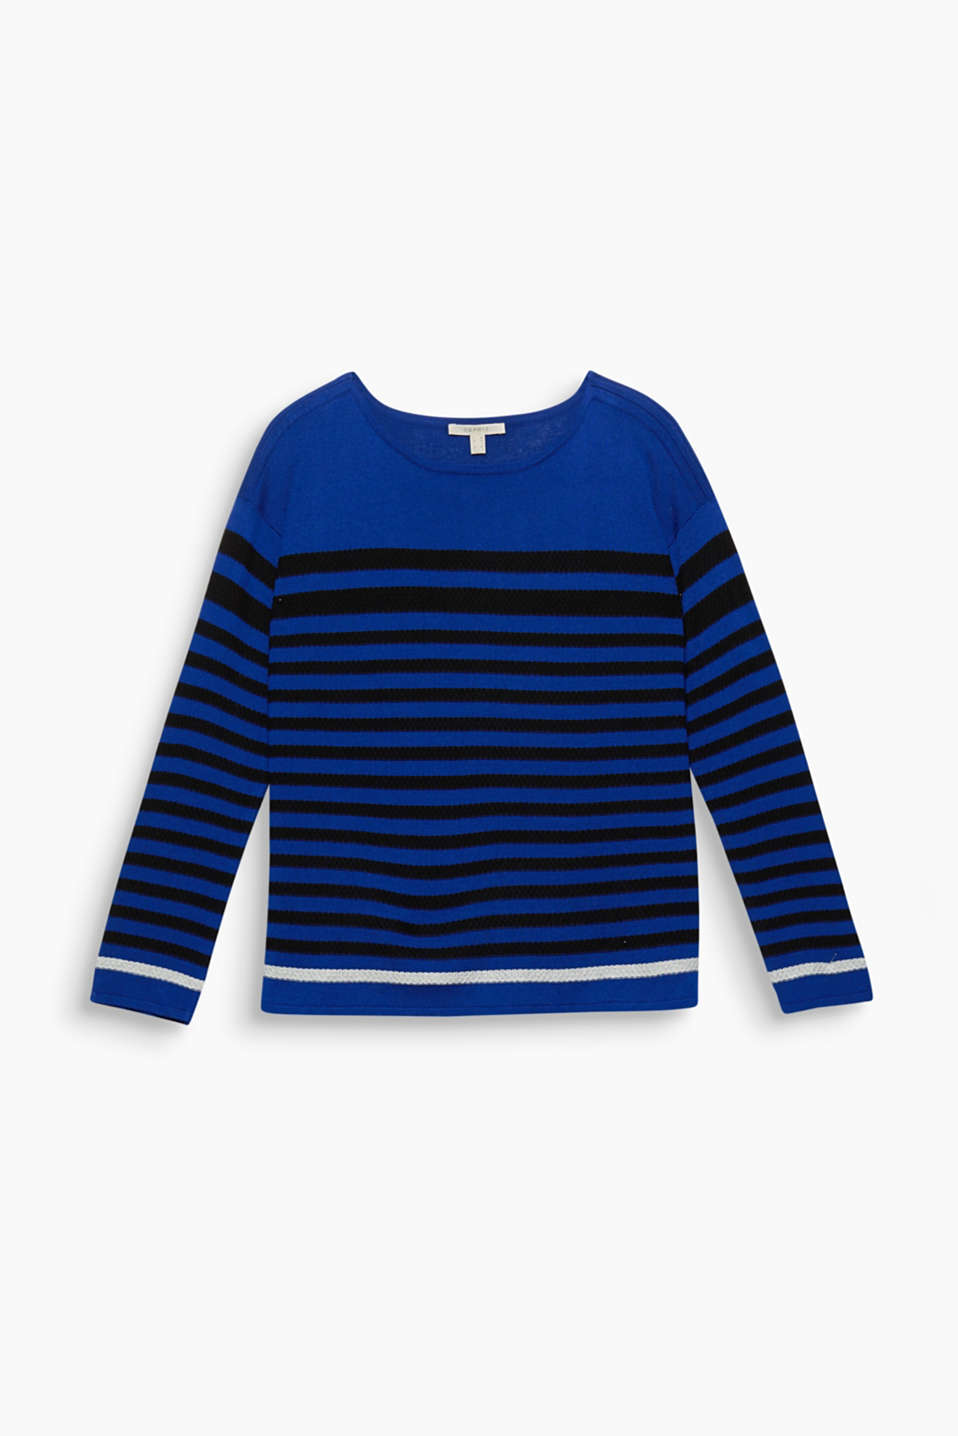 The textured striped pattern give this figure-skimming fine knit jumper its attractive look.